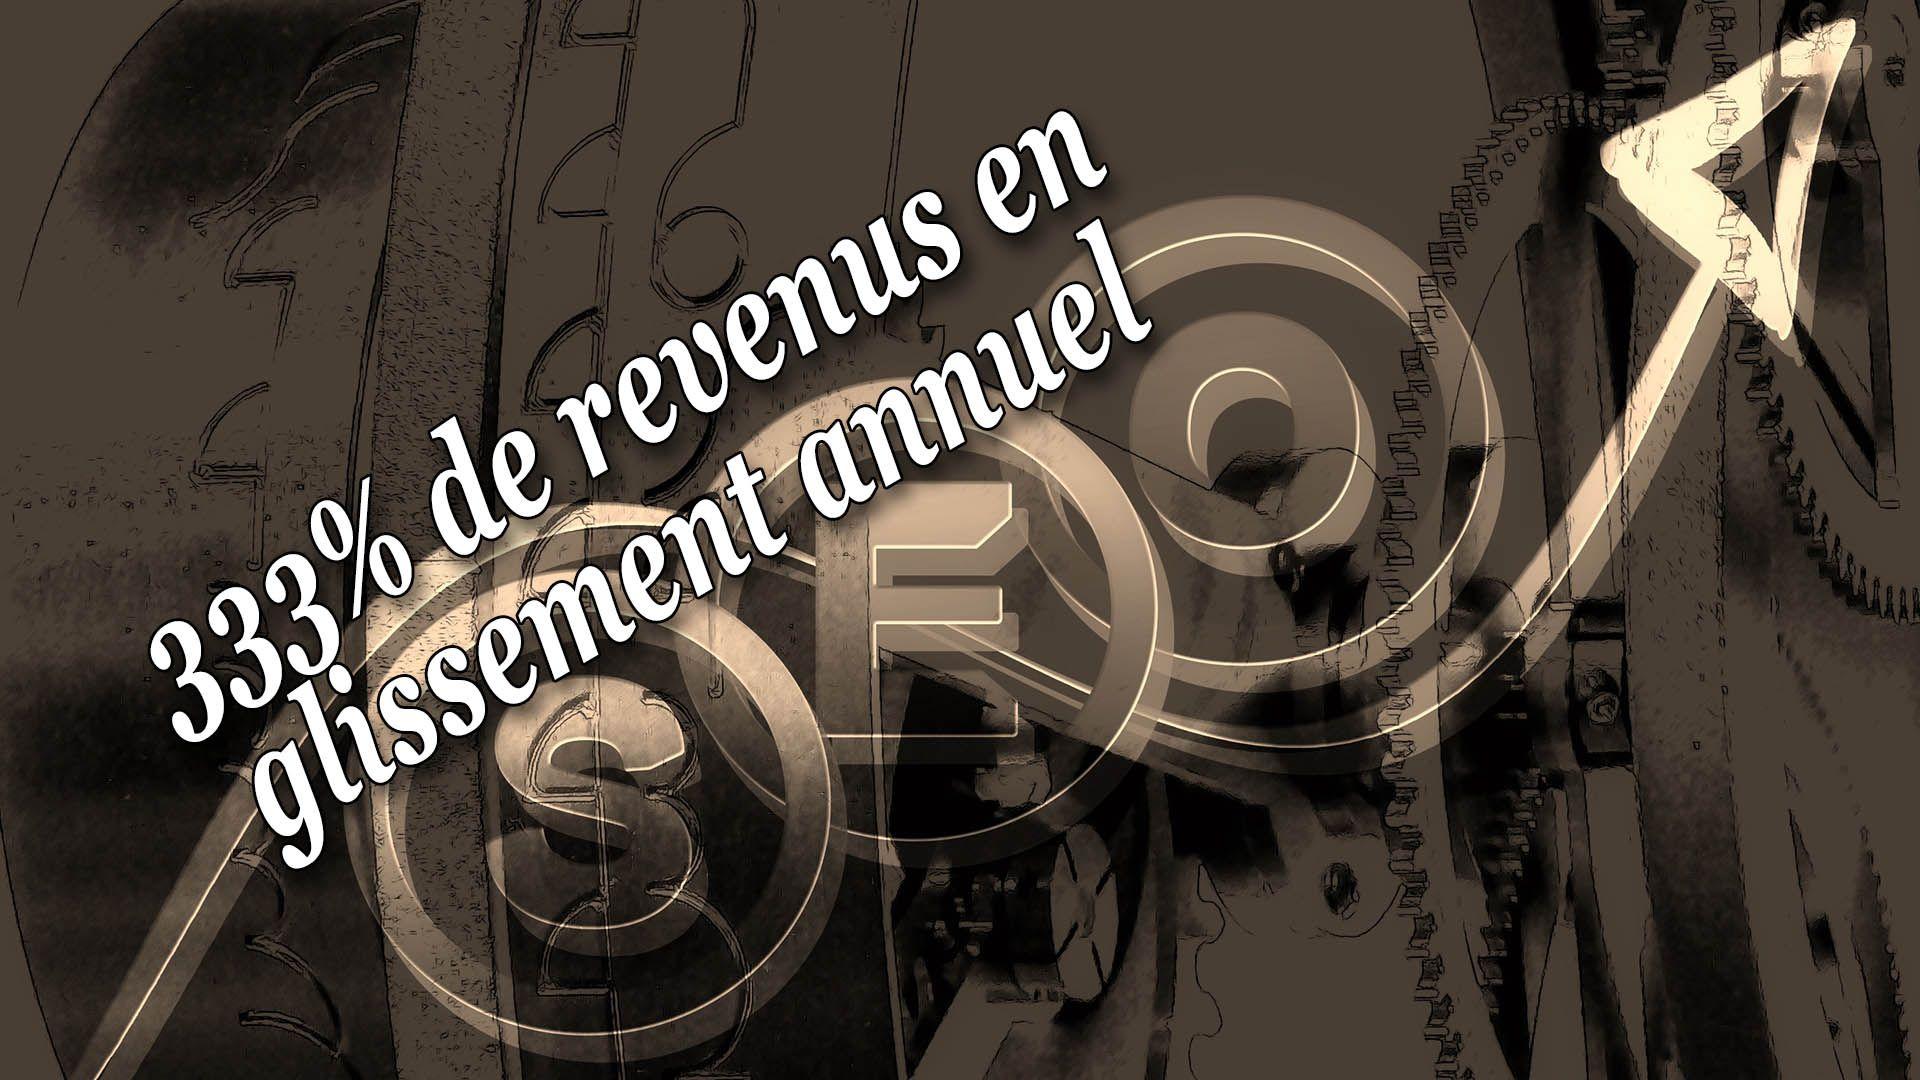 +333% de revenus en glissement annuel (étude) #GrowthHacking #WEbMarketing #FormationGrowthHacking #CentreDeFormationFrance #TunnelAARRR #AARRR #SocialMedia #CommunityManagement #SEO #acquisition #revenu